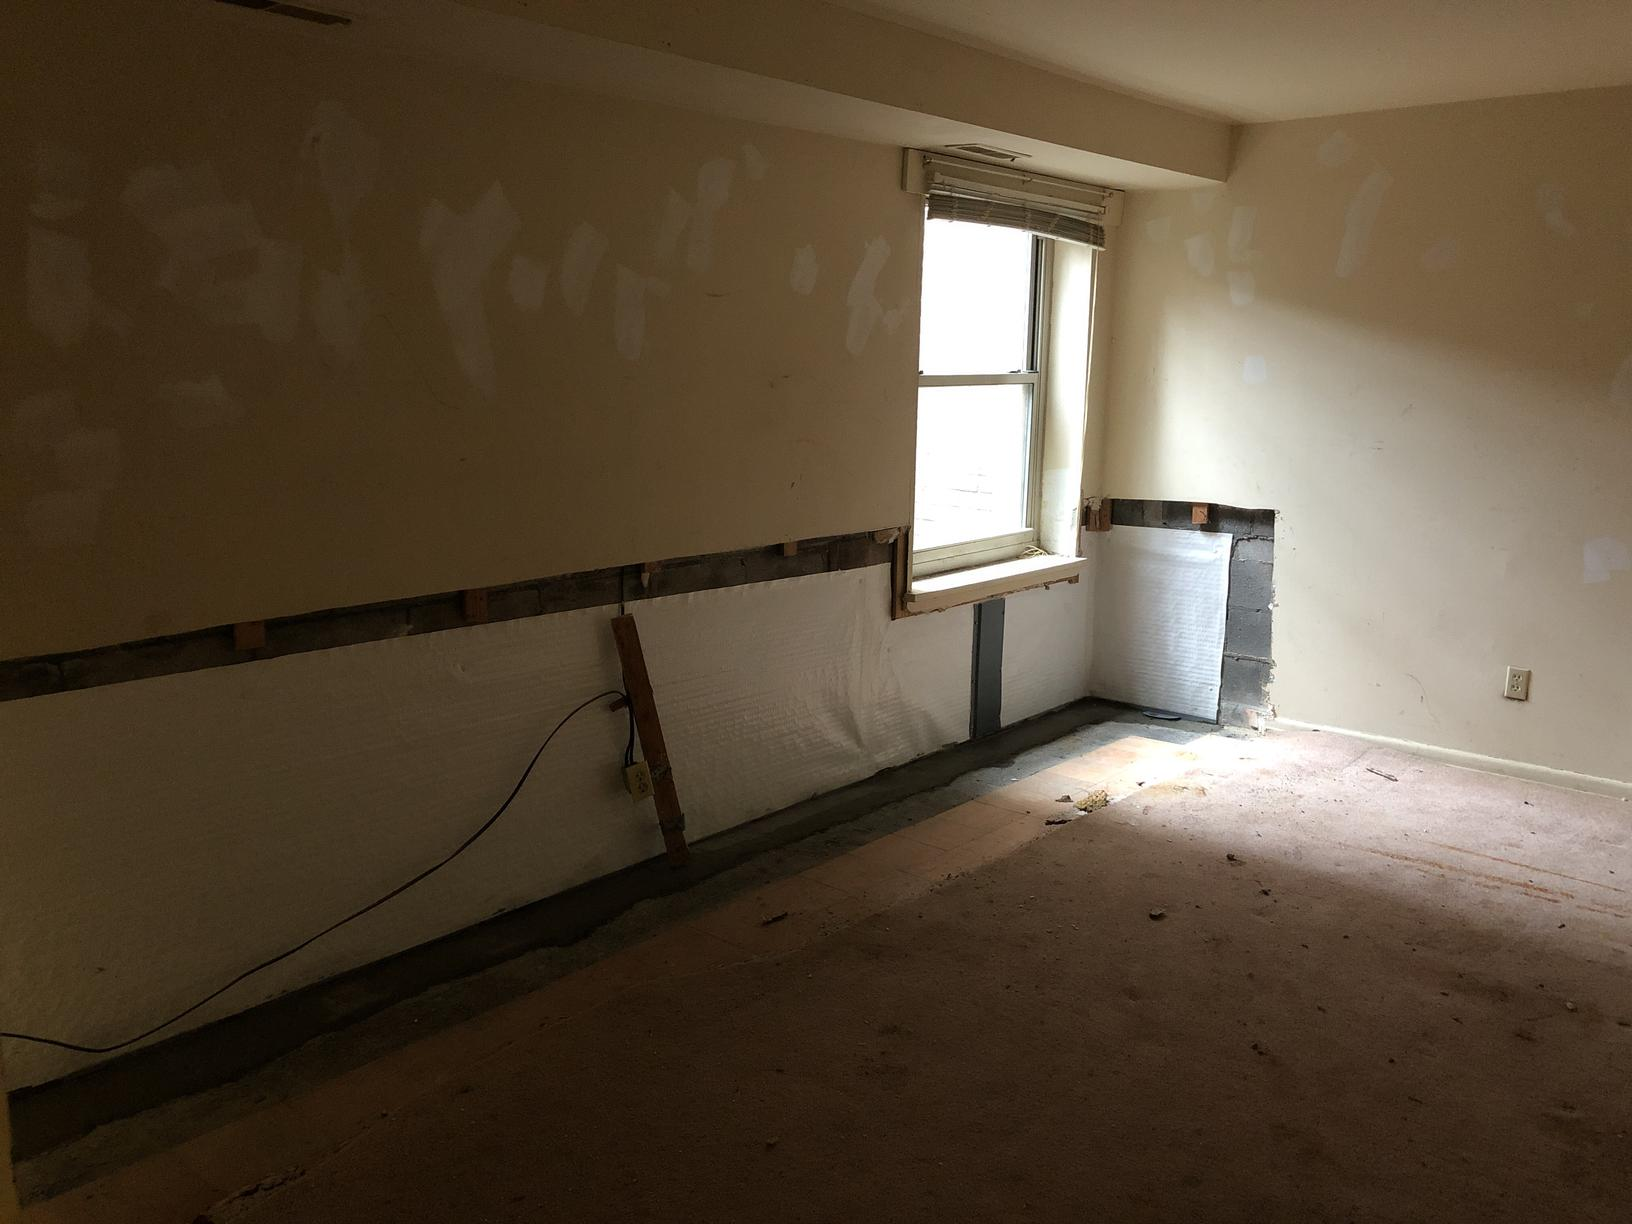 Annandale, VA Basement Unit Condo Full Perimeter System - After Photo